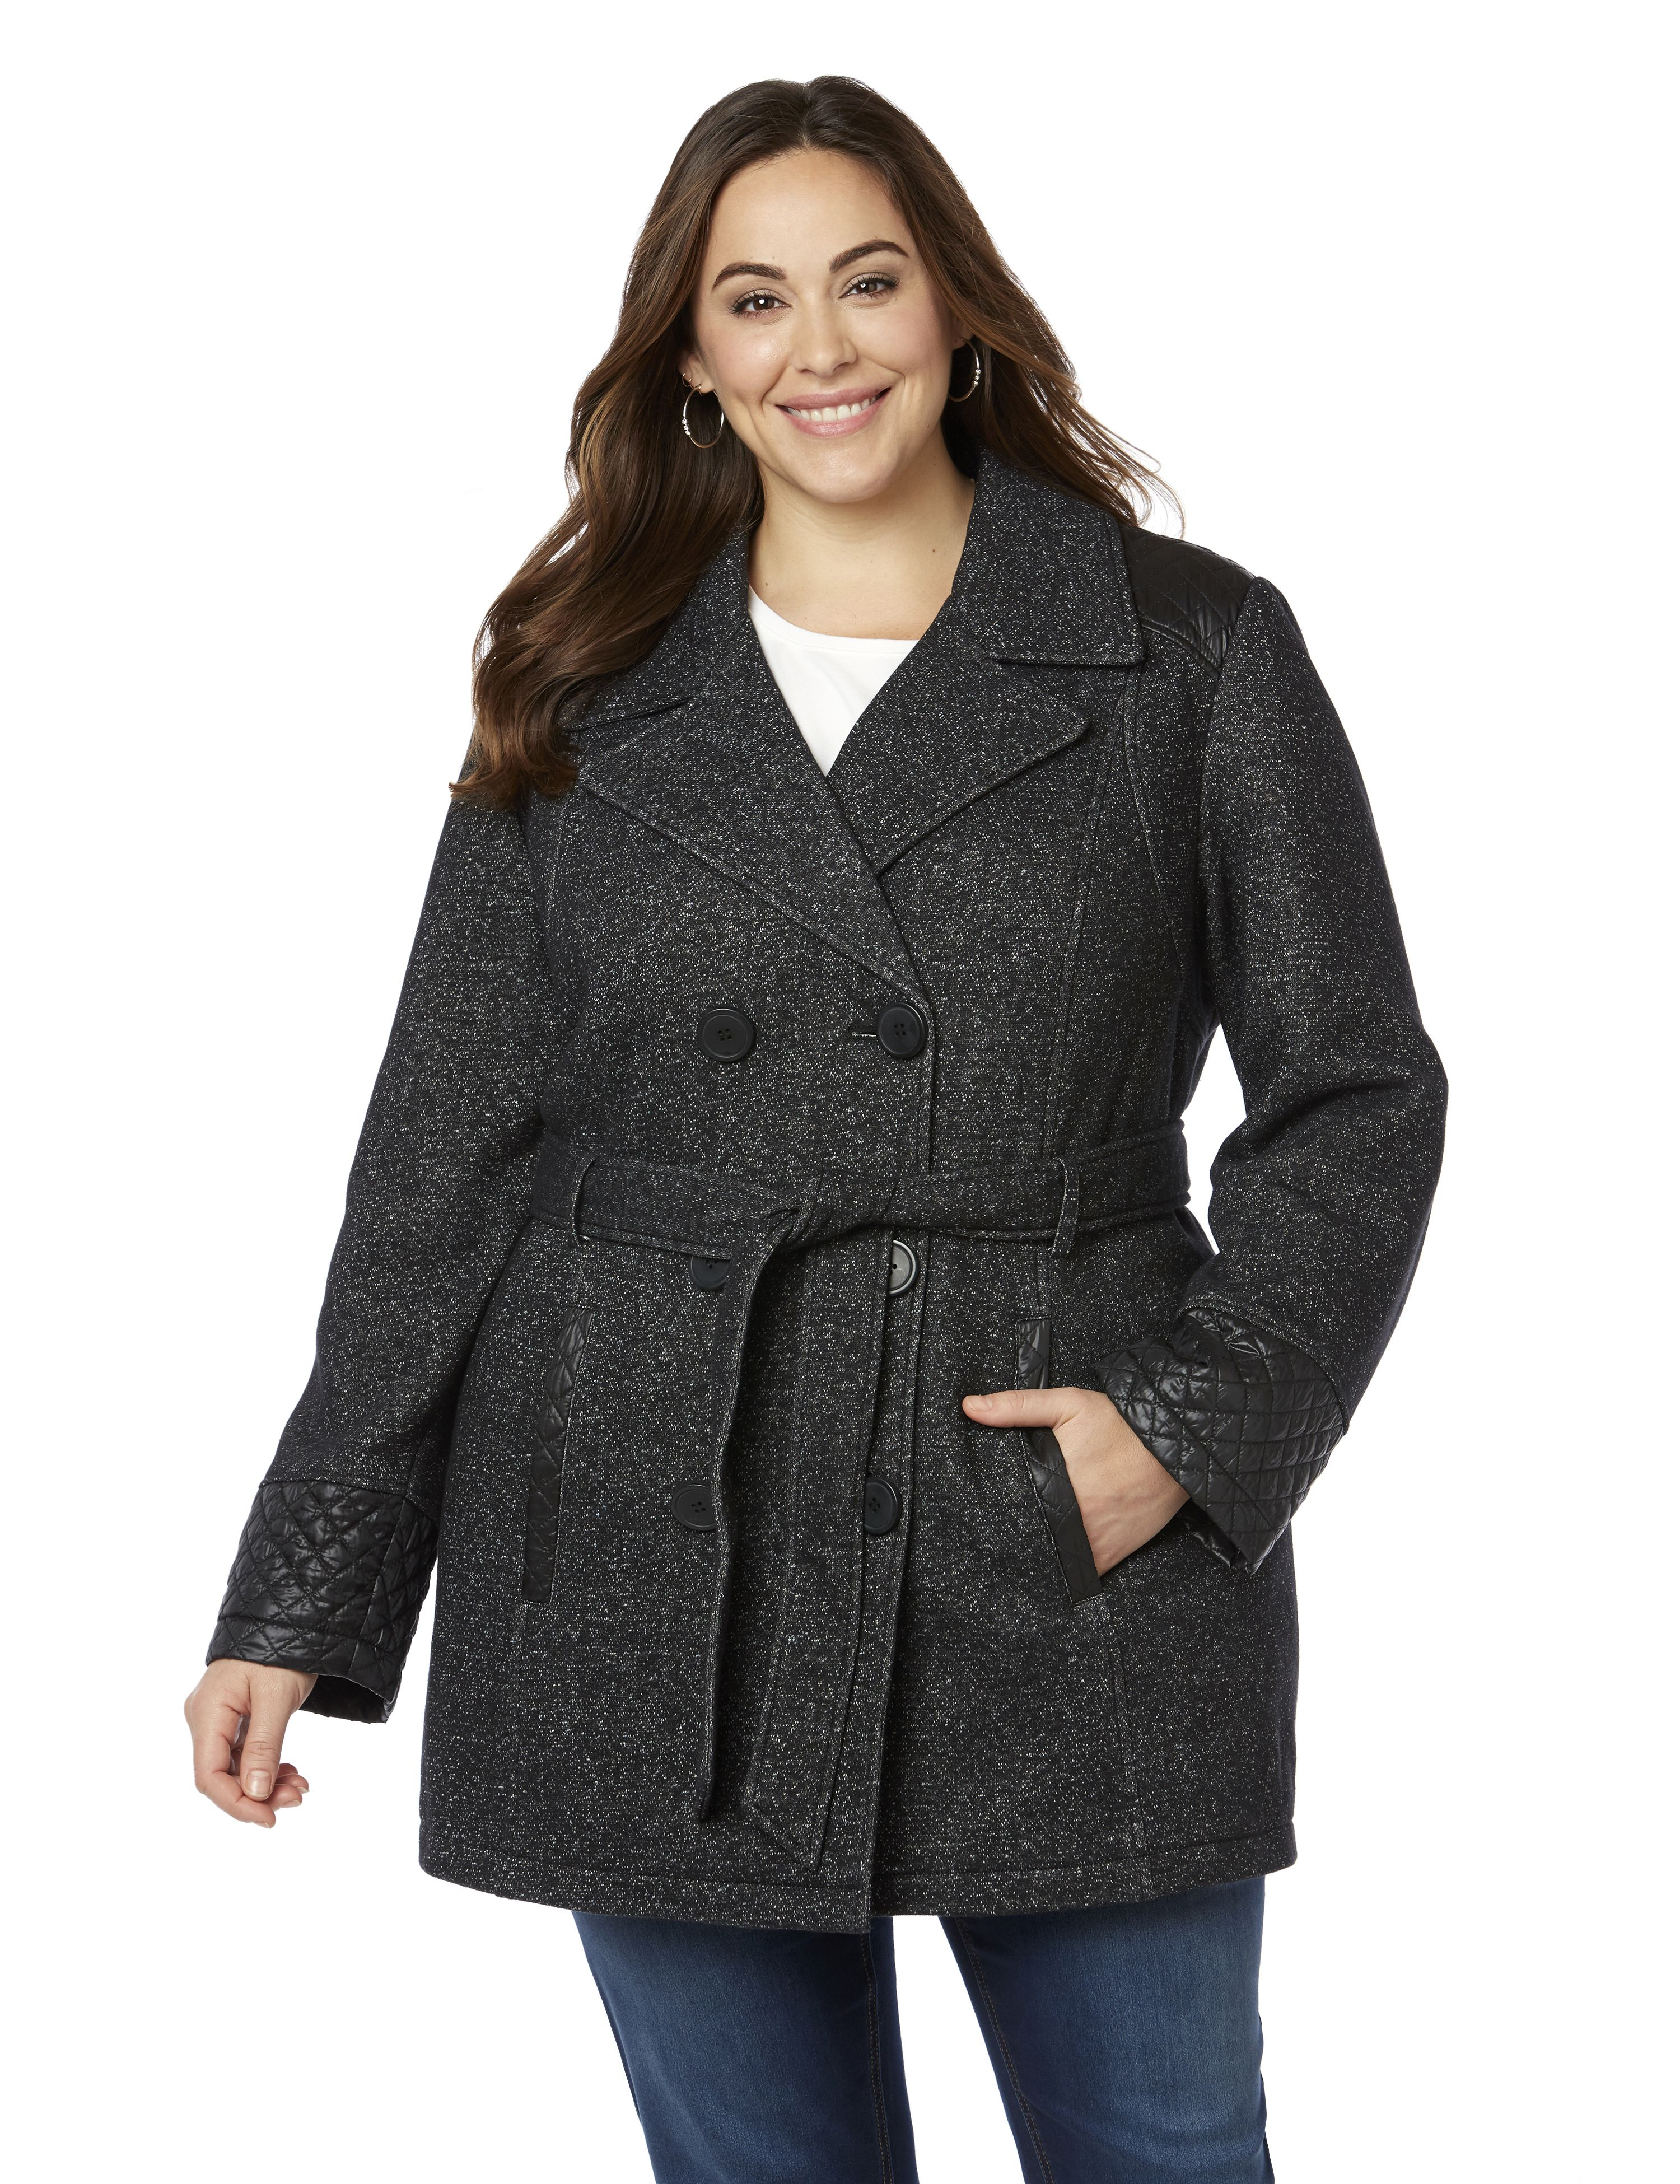 Fleece Peacoat 1084409 SWEATSHIRT FLEECE PEACOAT W MP-300080791